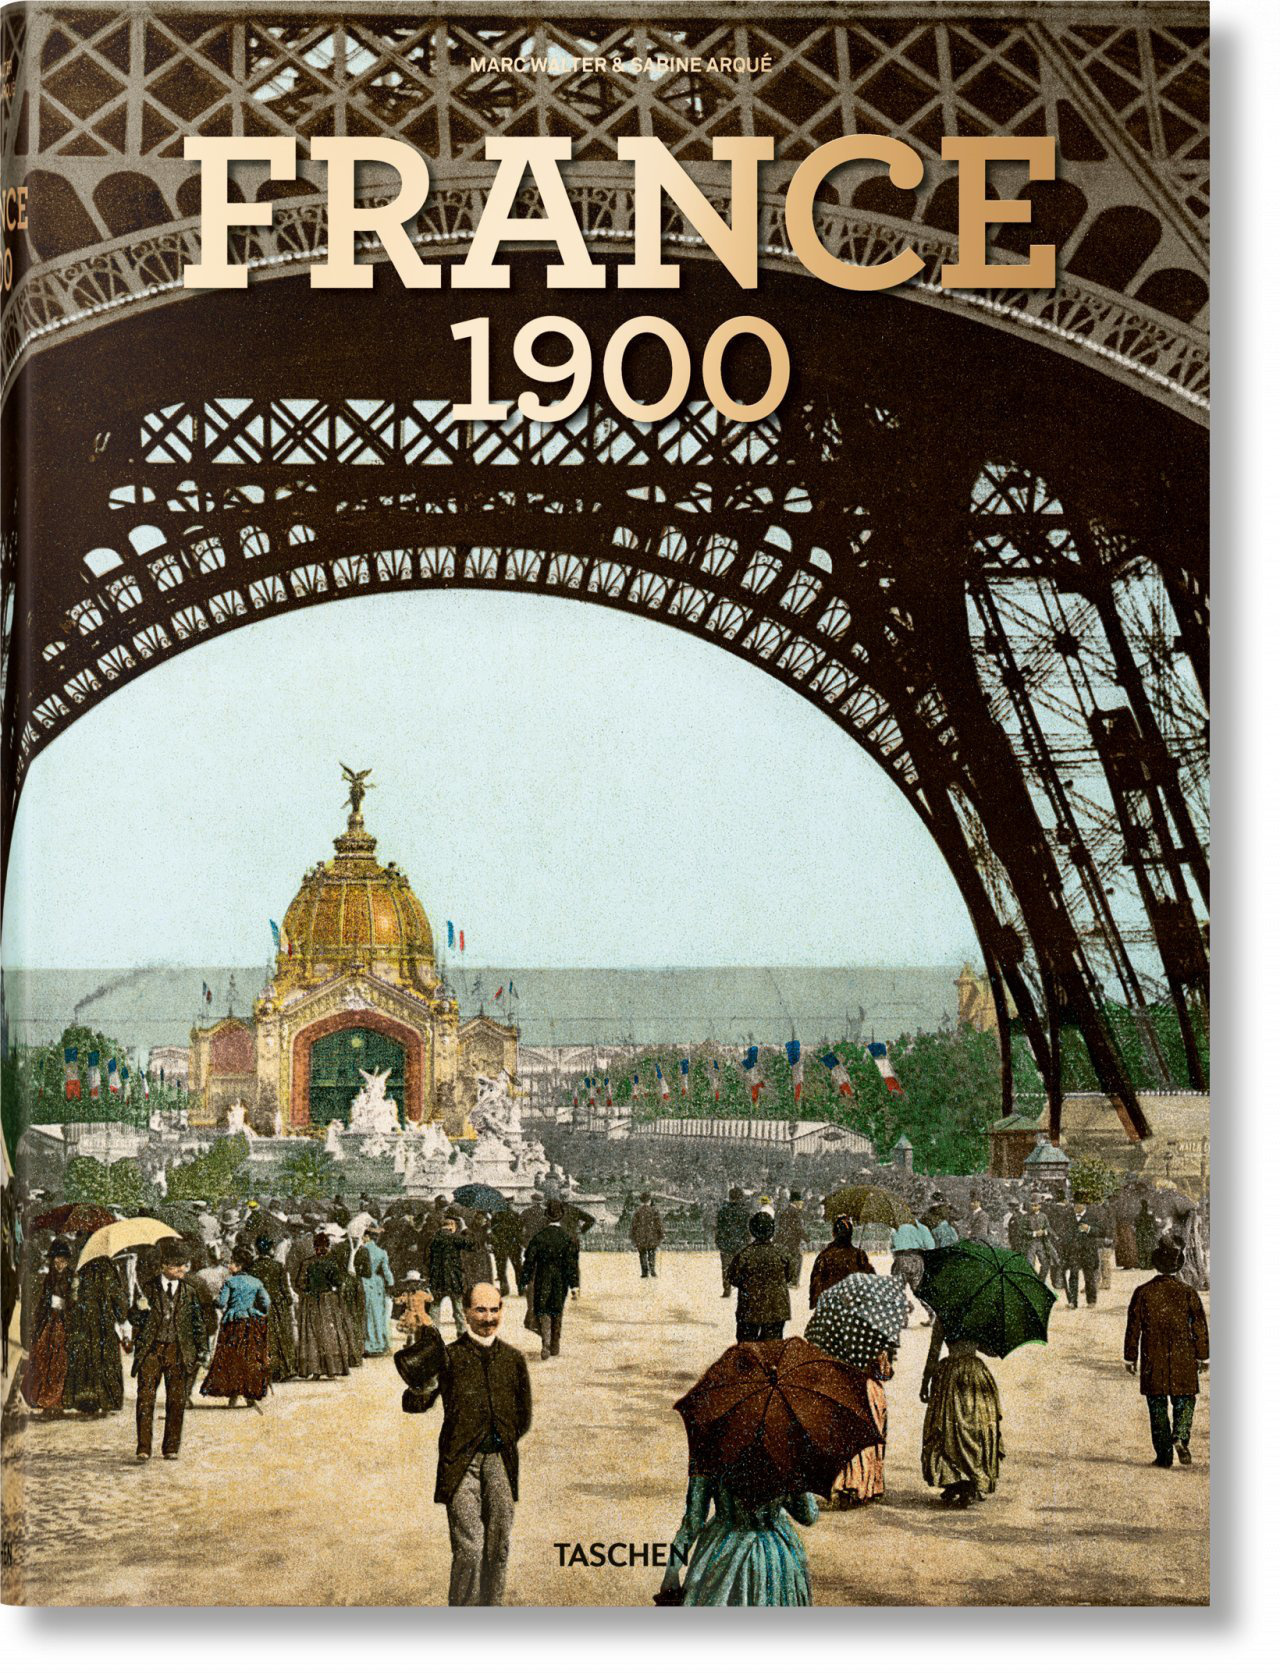 FRANCE AROUND 1900. A PORTRAIT IN COLOR - FRANCE 1900, A PORTRAIT IN COLOR